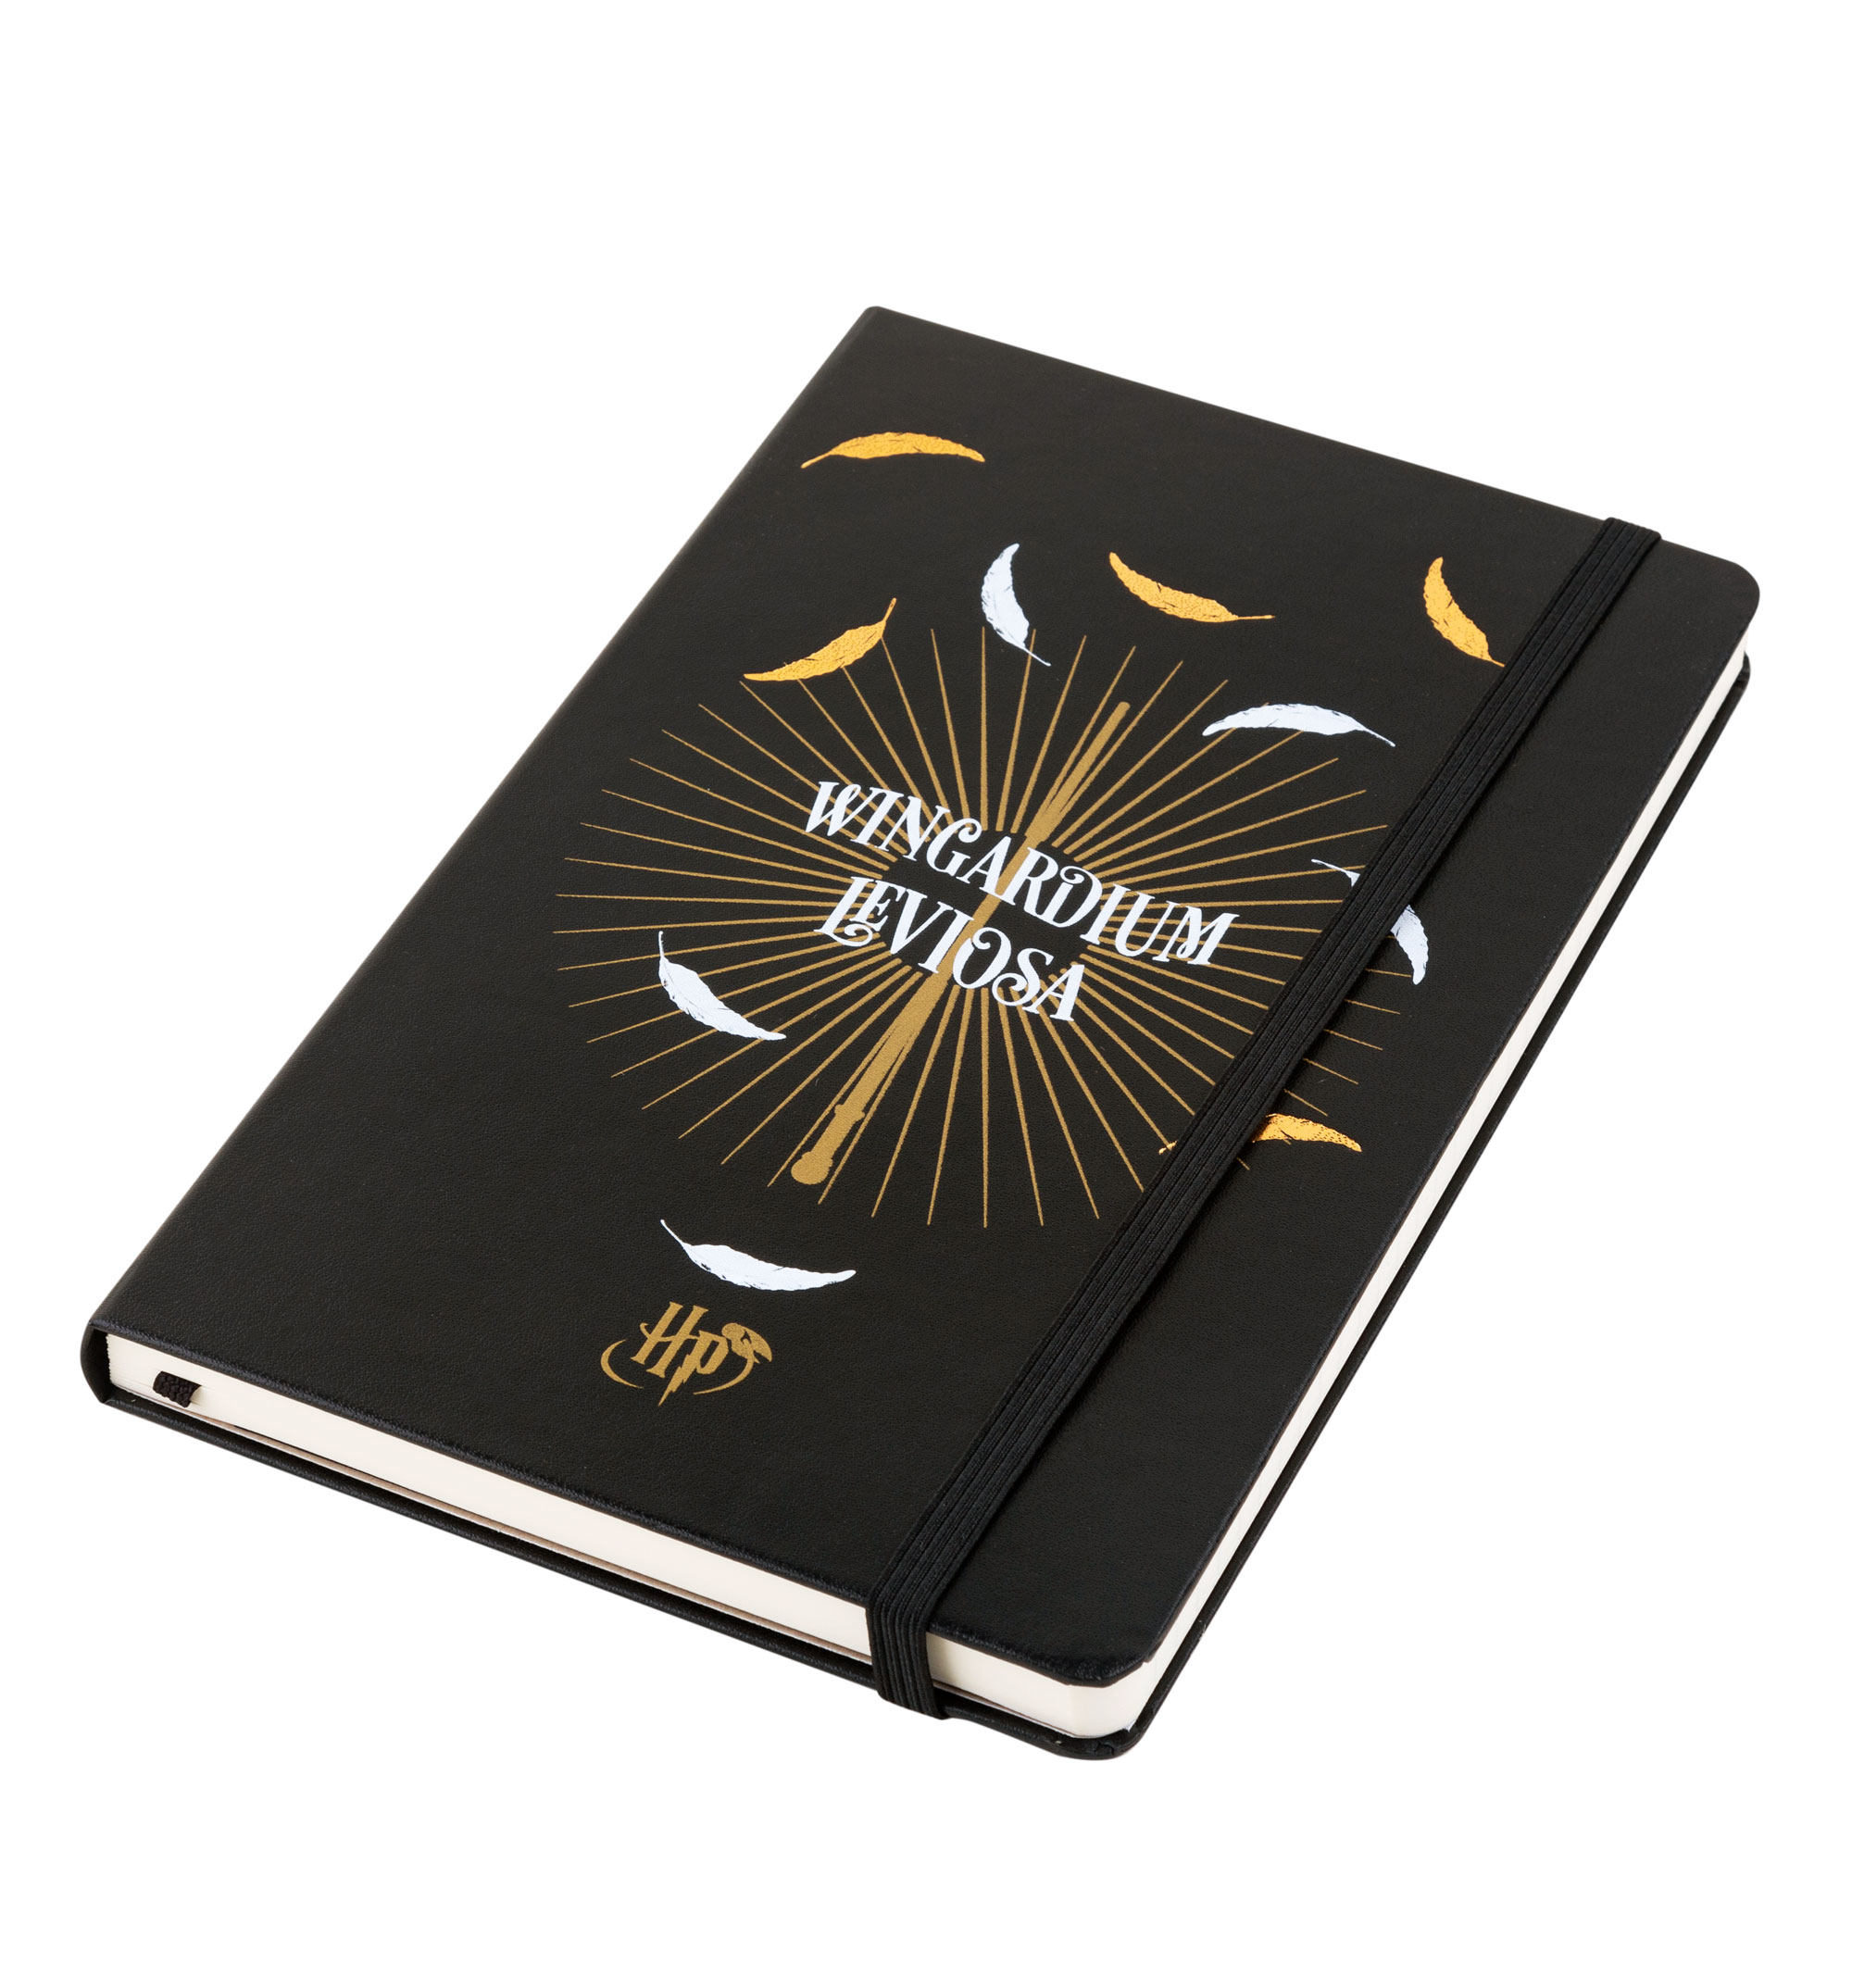 68943828 Limited Edition Harry Potter Wingardium Leviosa Ruled Notebook from  Moleskine - Hardcover with Harry Potter Wingardium Leviosa design - Elastic  closure